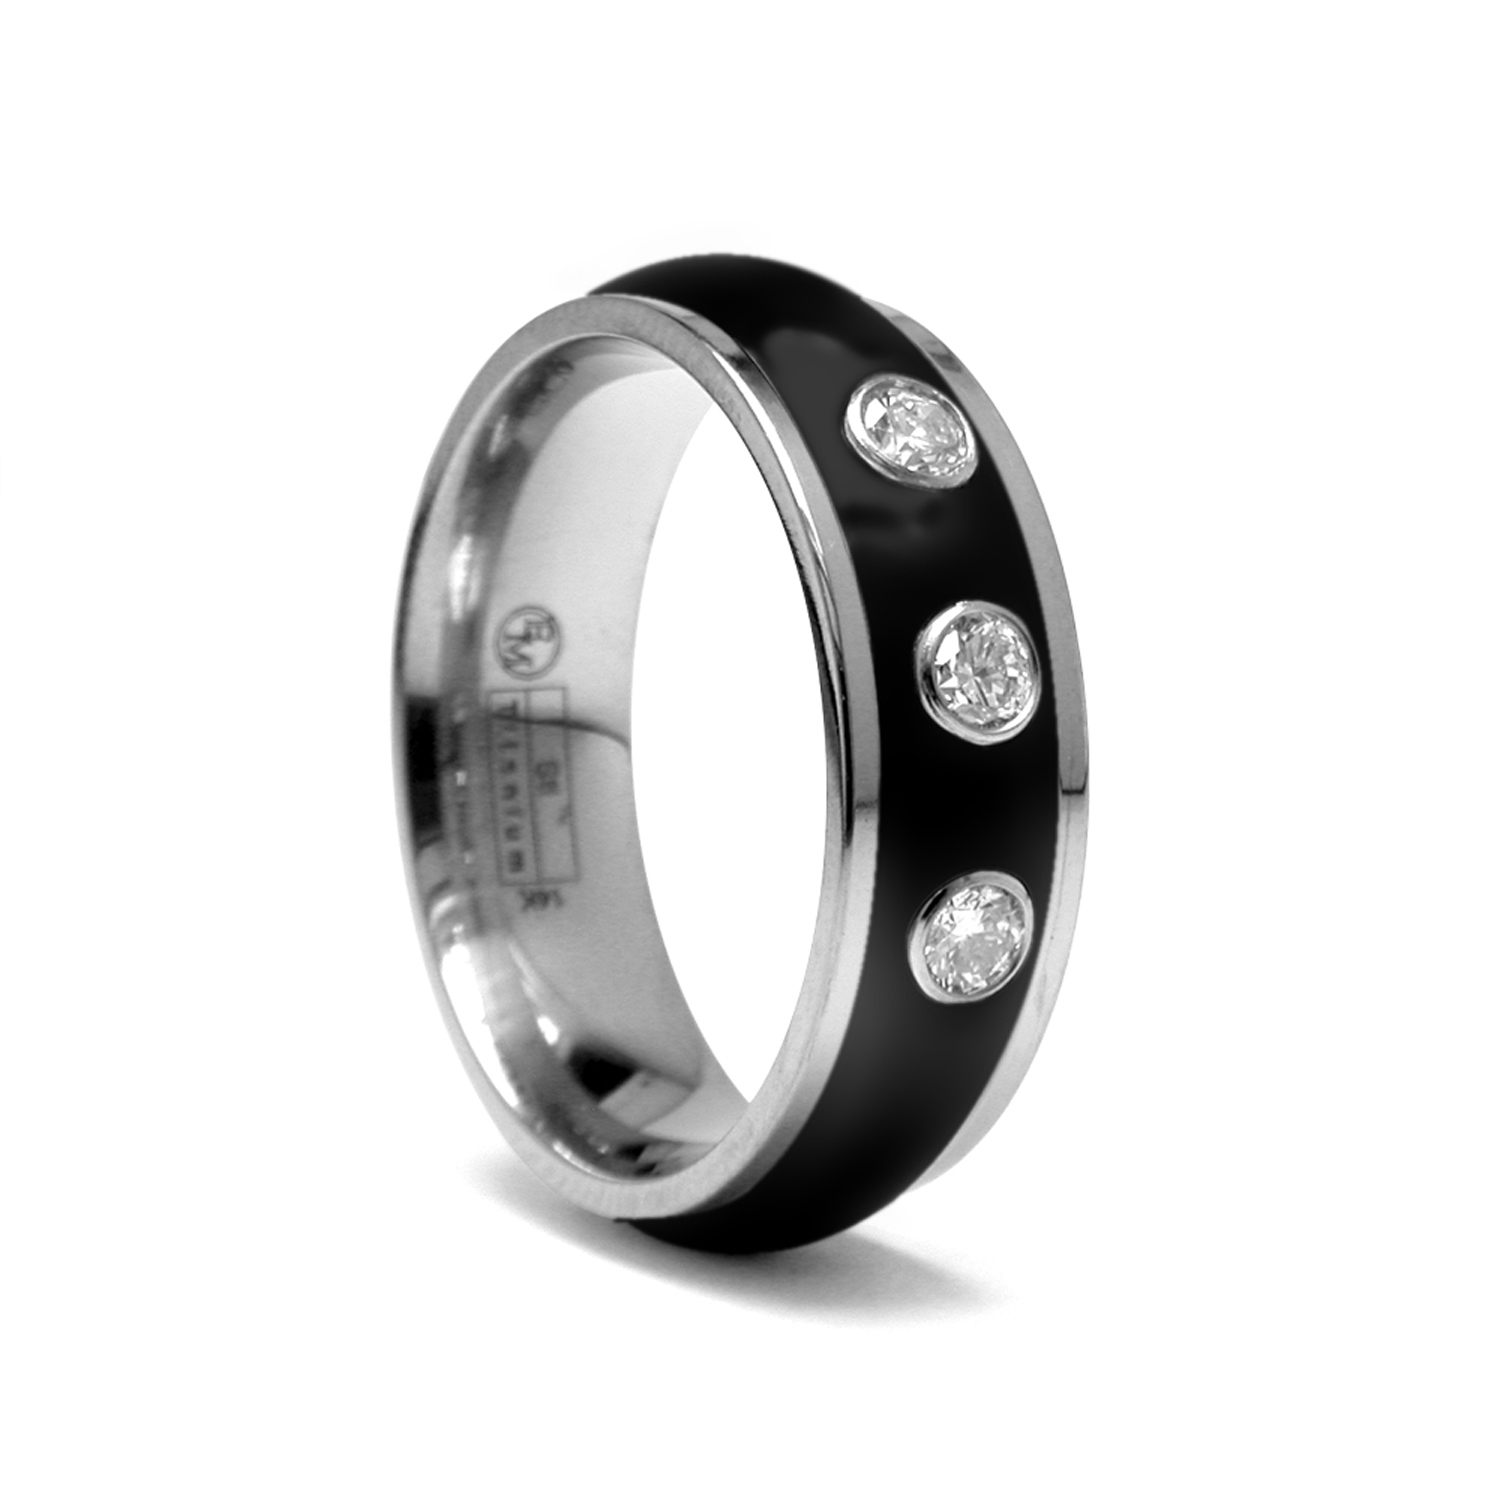 7mm Black Titanium Men's Wedding Ring  Alpha Rings